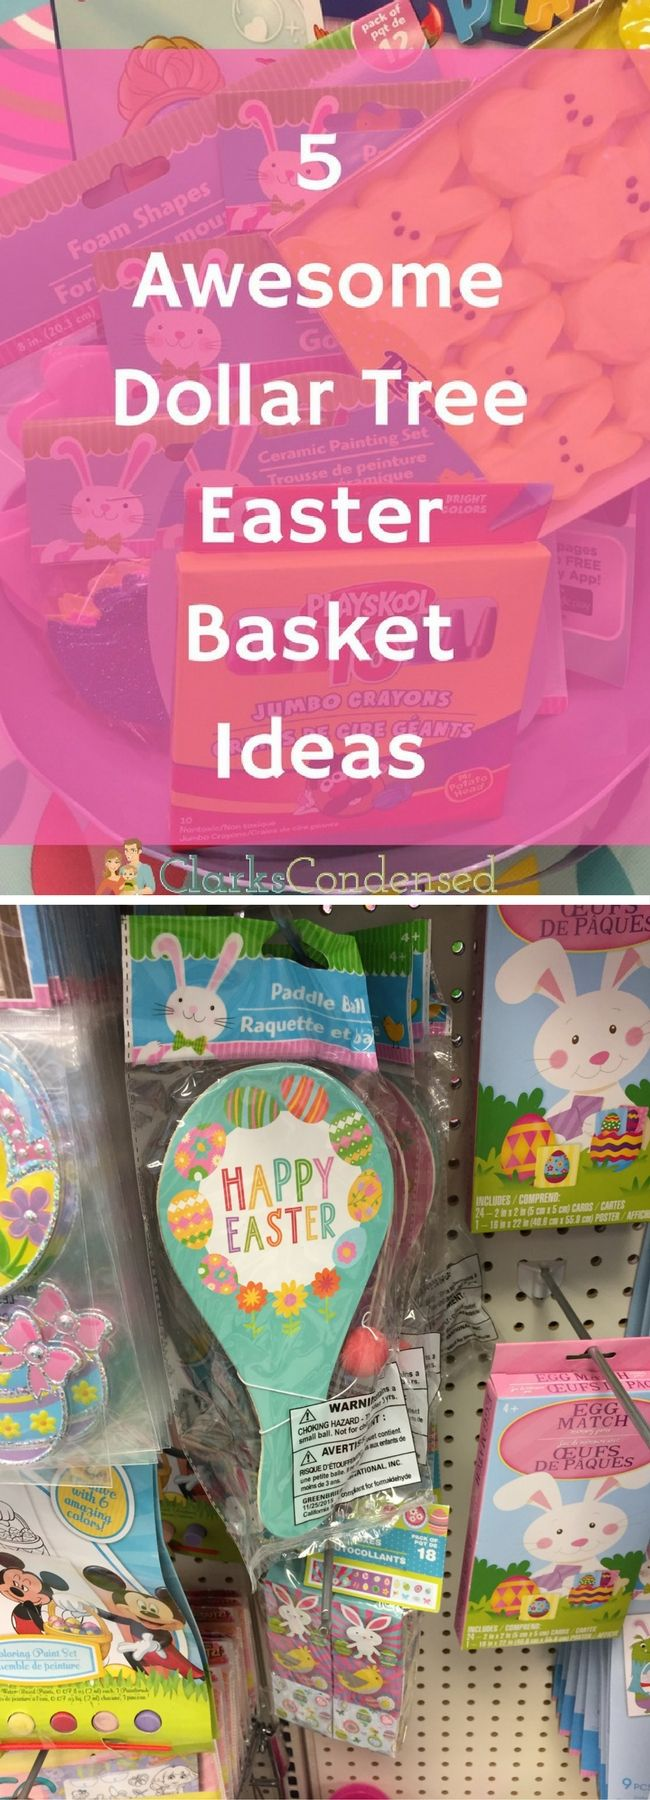 Get some easy and inexpensive Easter basket ideas from The Dollar Tree!